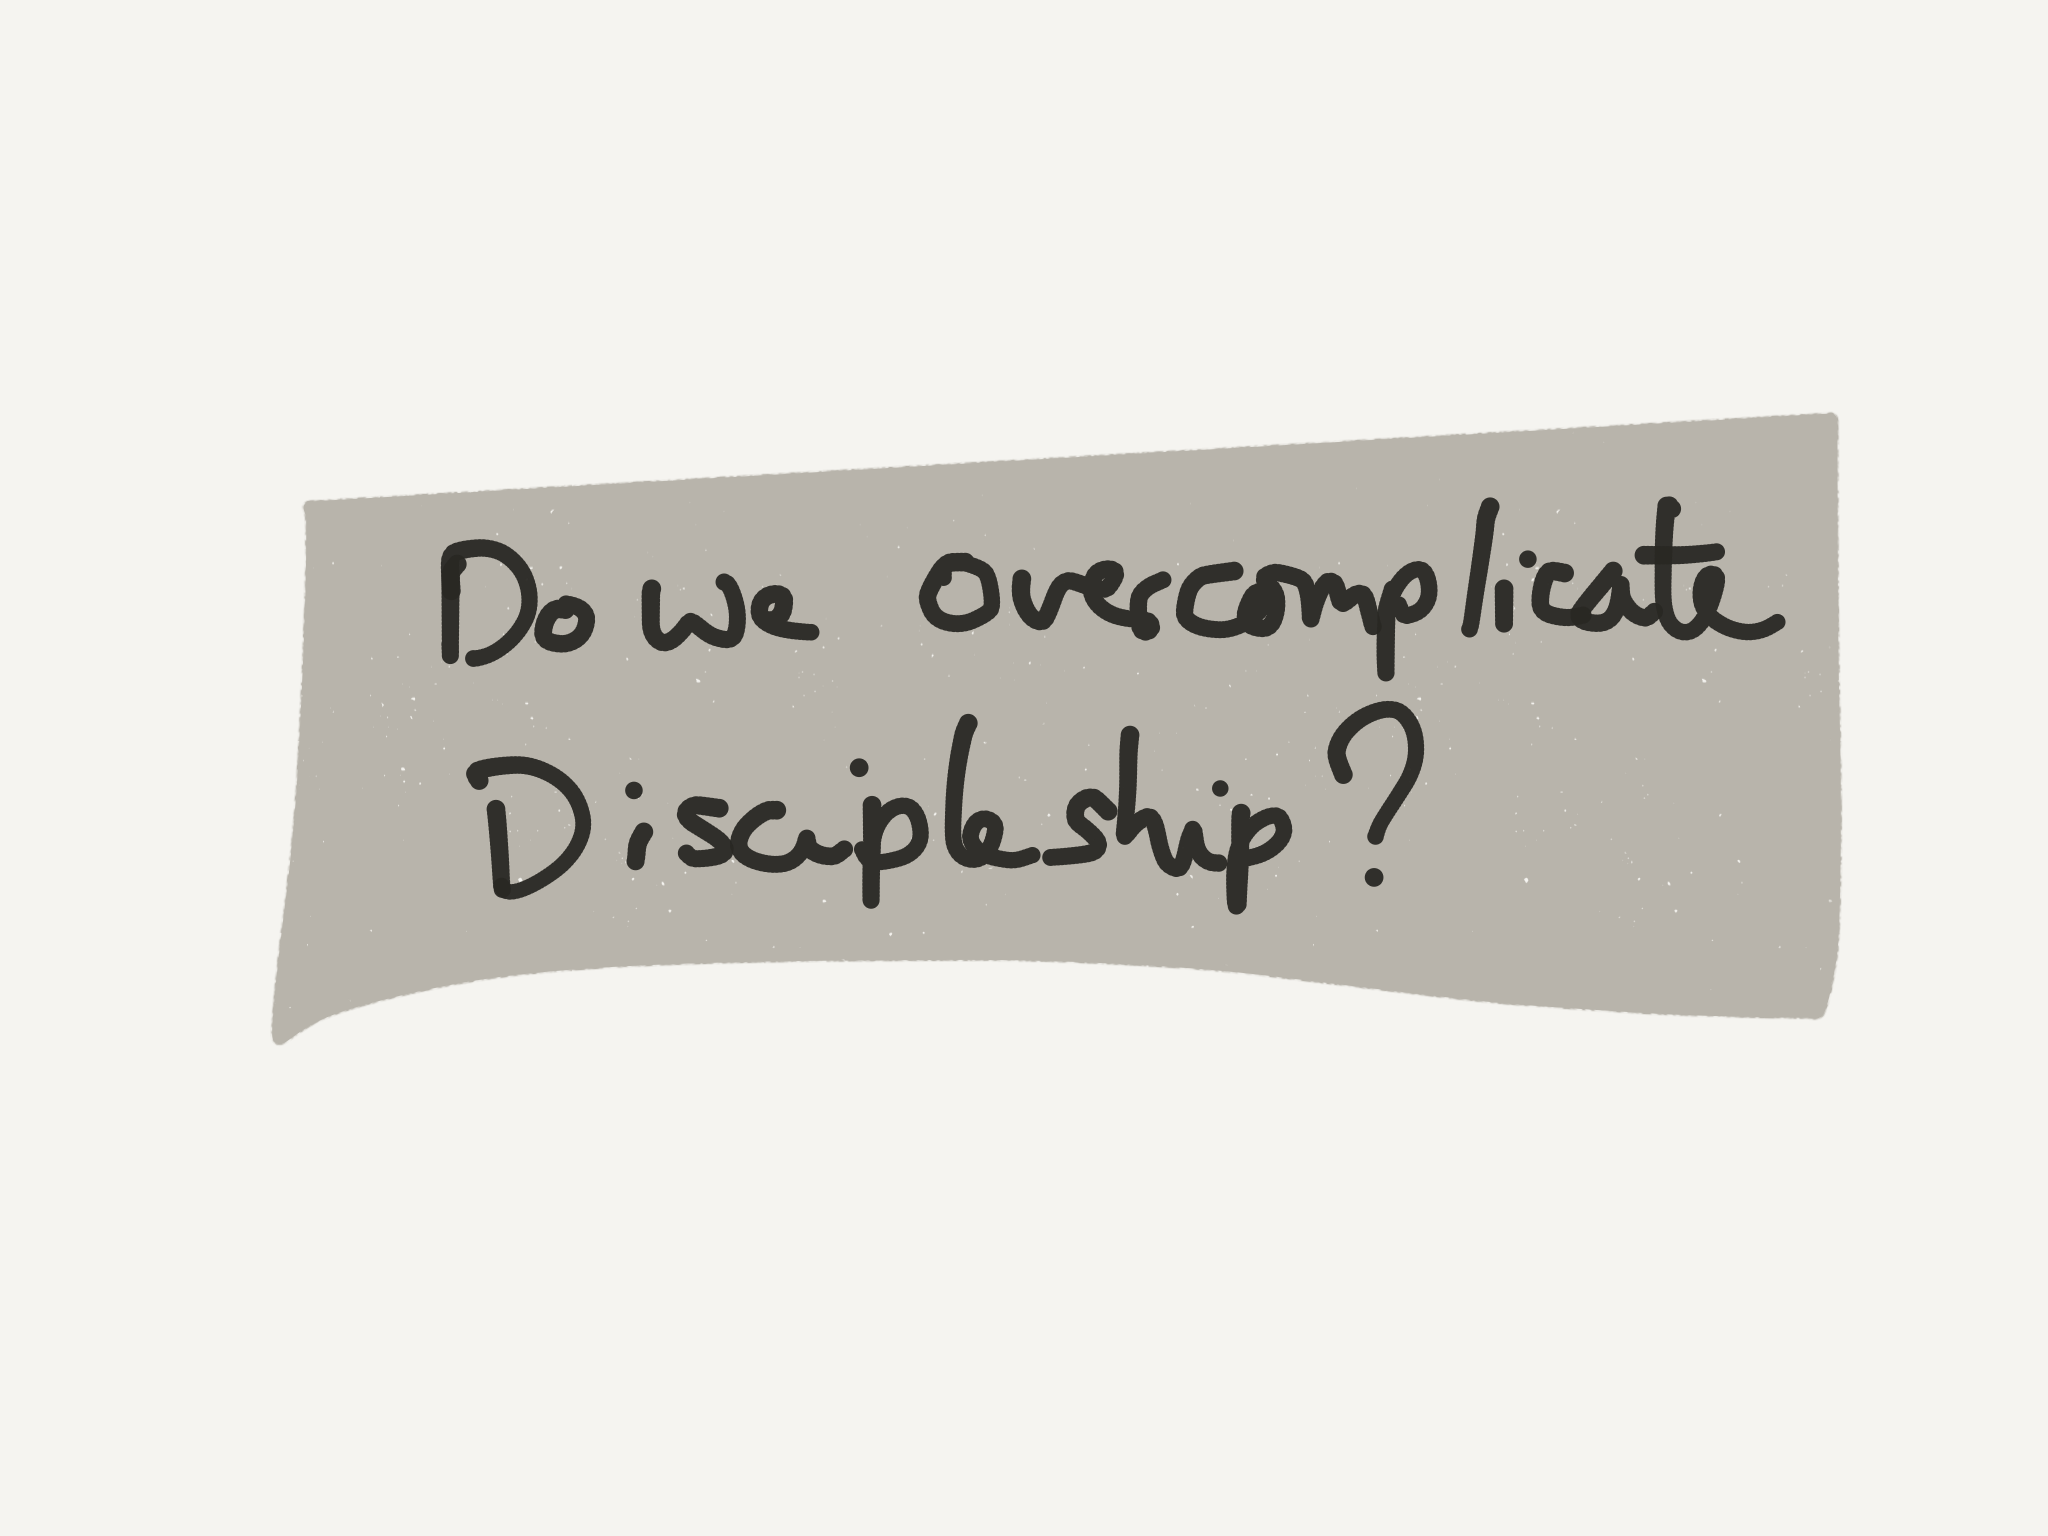 Do We Overcomplicate Discipleship?